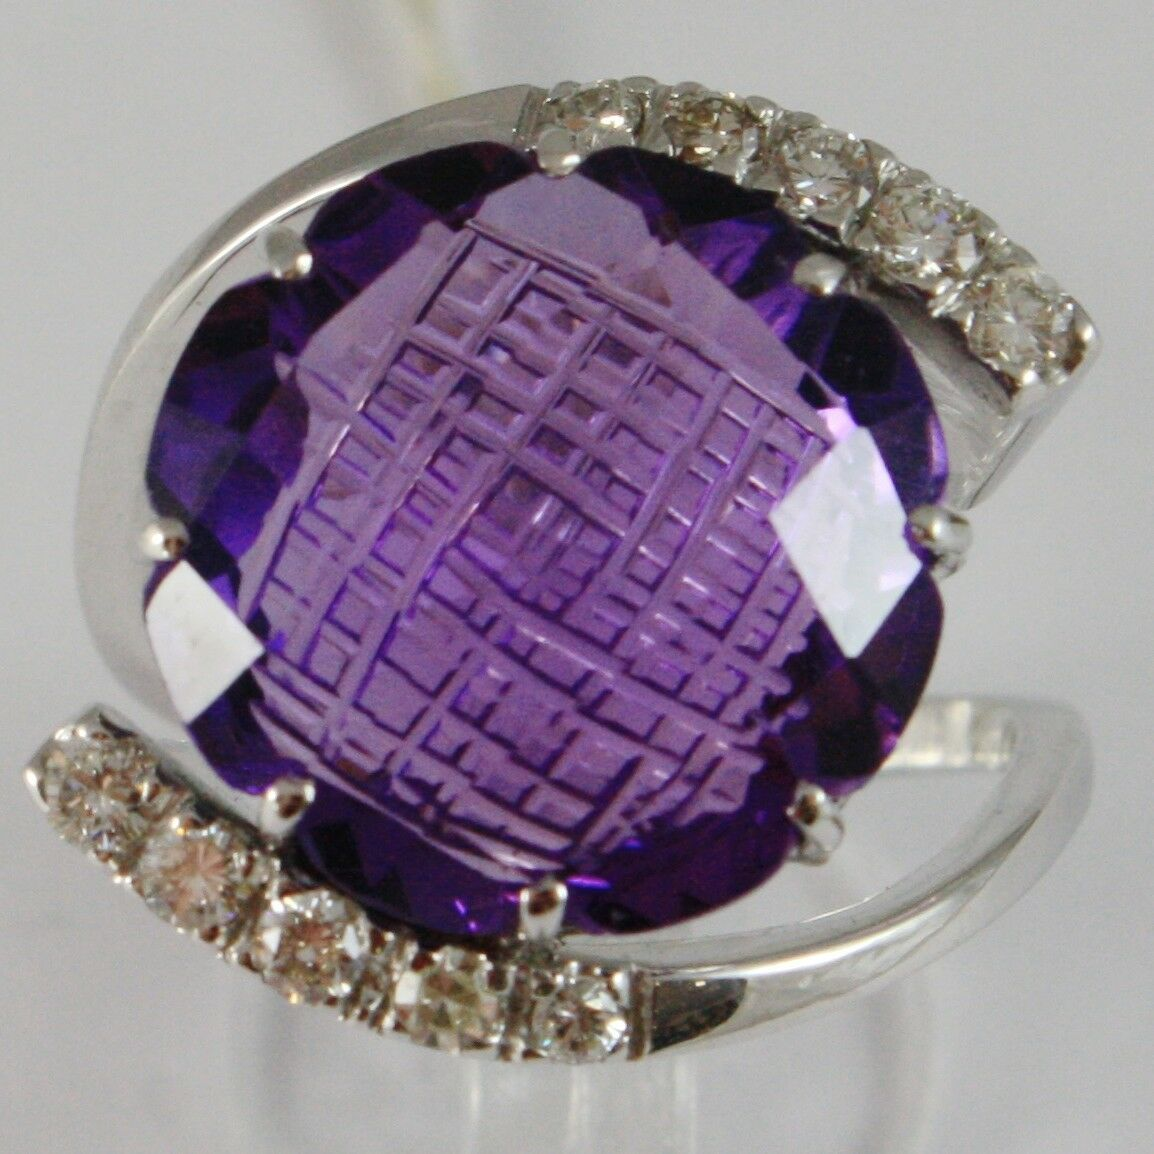 Ring White Gold 750 18K, with Amethyst Cut CUSHION CT 11.5, DIAMONDS CT 0.38